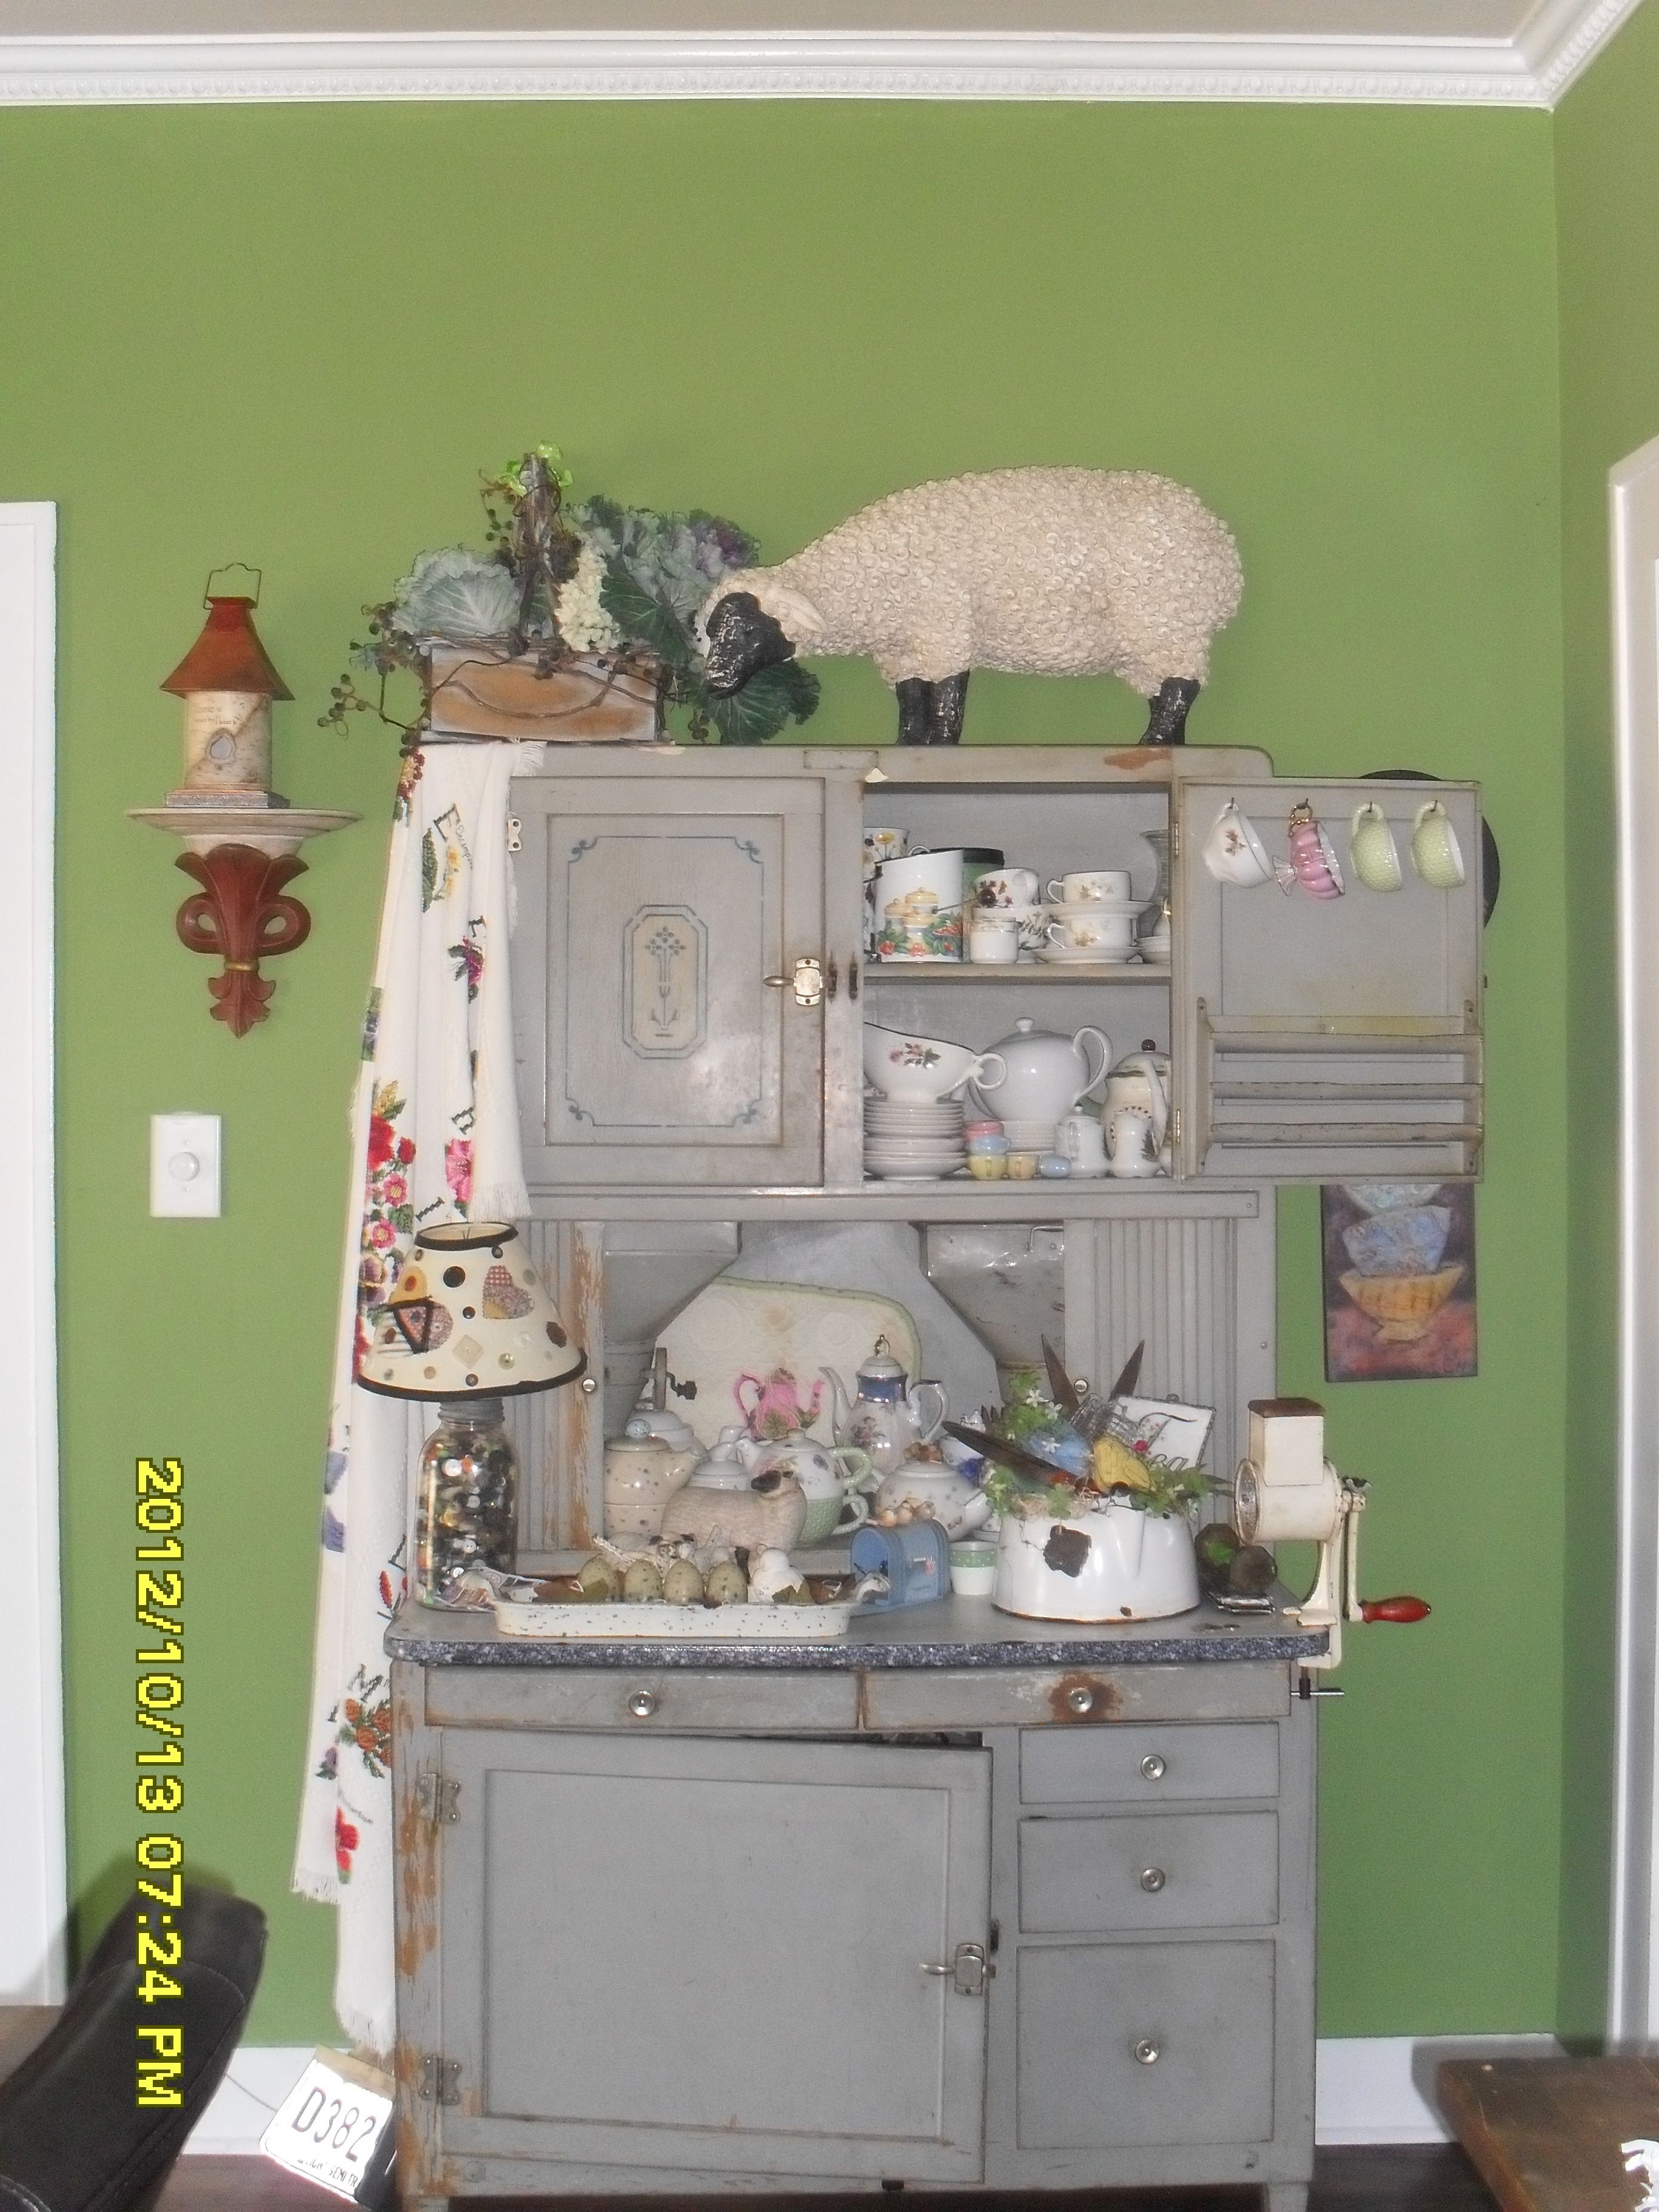 Hoosier Kitchen Cupboard Original Paint And Stencils If You Look In The Middle You Ll See T Vintage Cupboard Vintage Kitchen Cabinets Antique Hoosier Cabinet